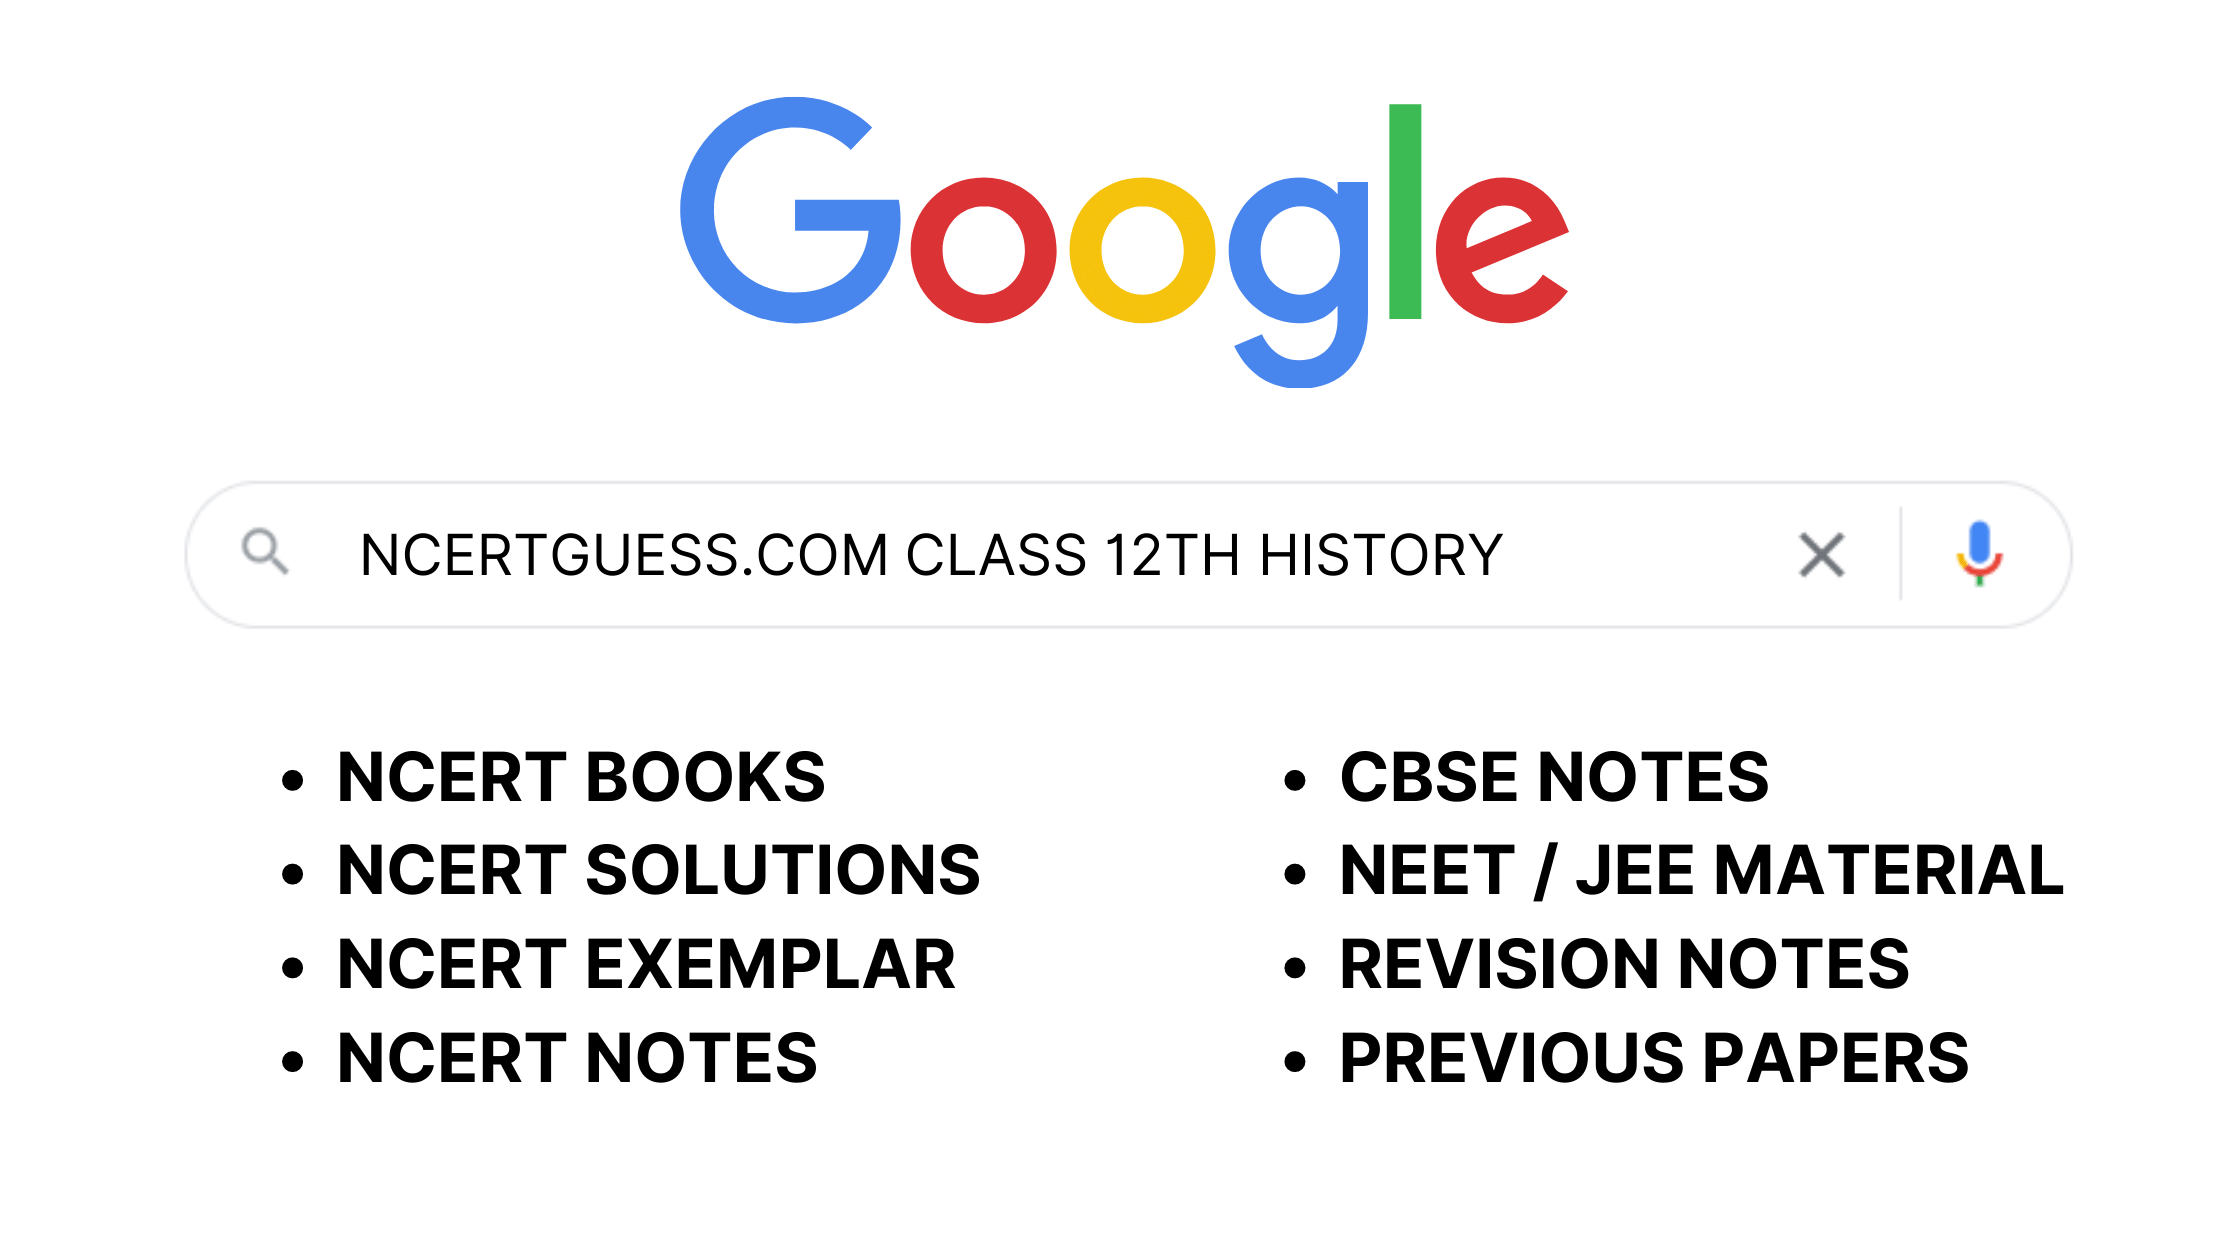 NCERT SOLUTIONS CLASS 12TH HISTORY